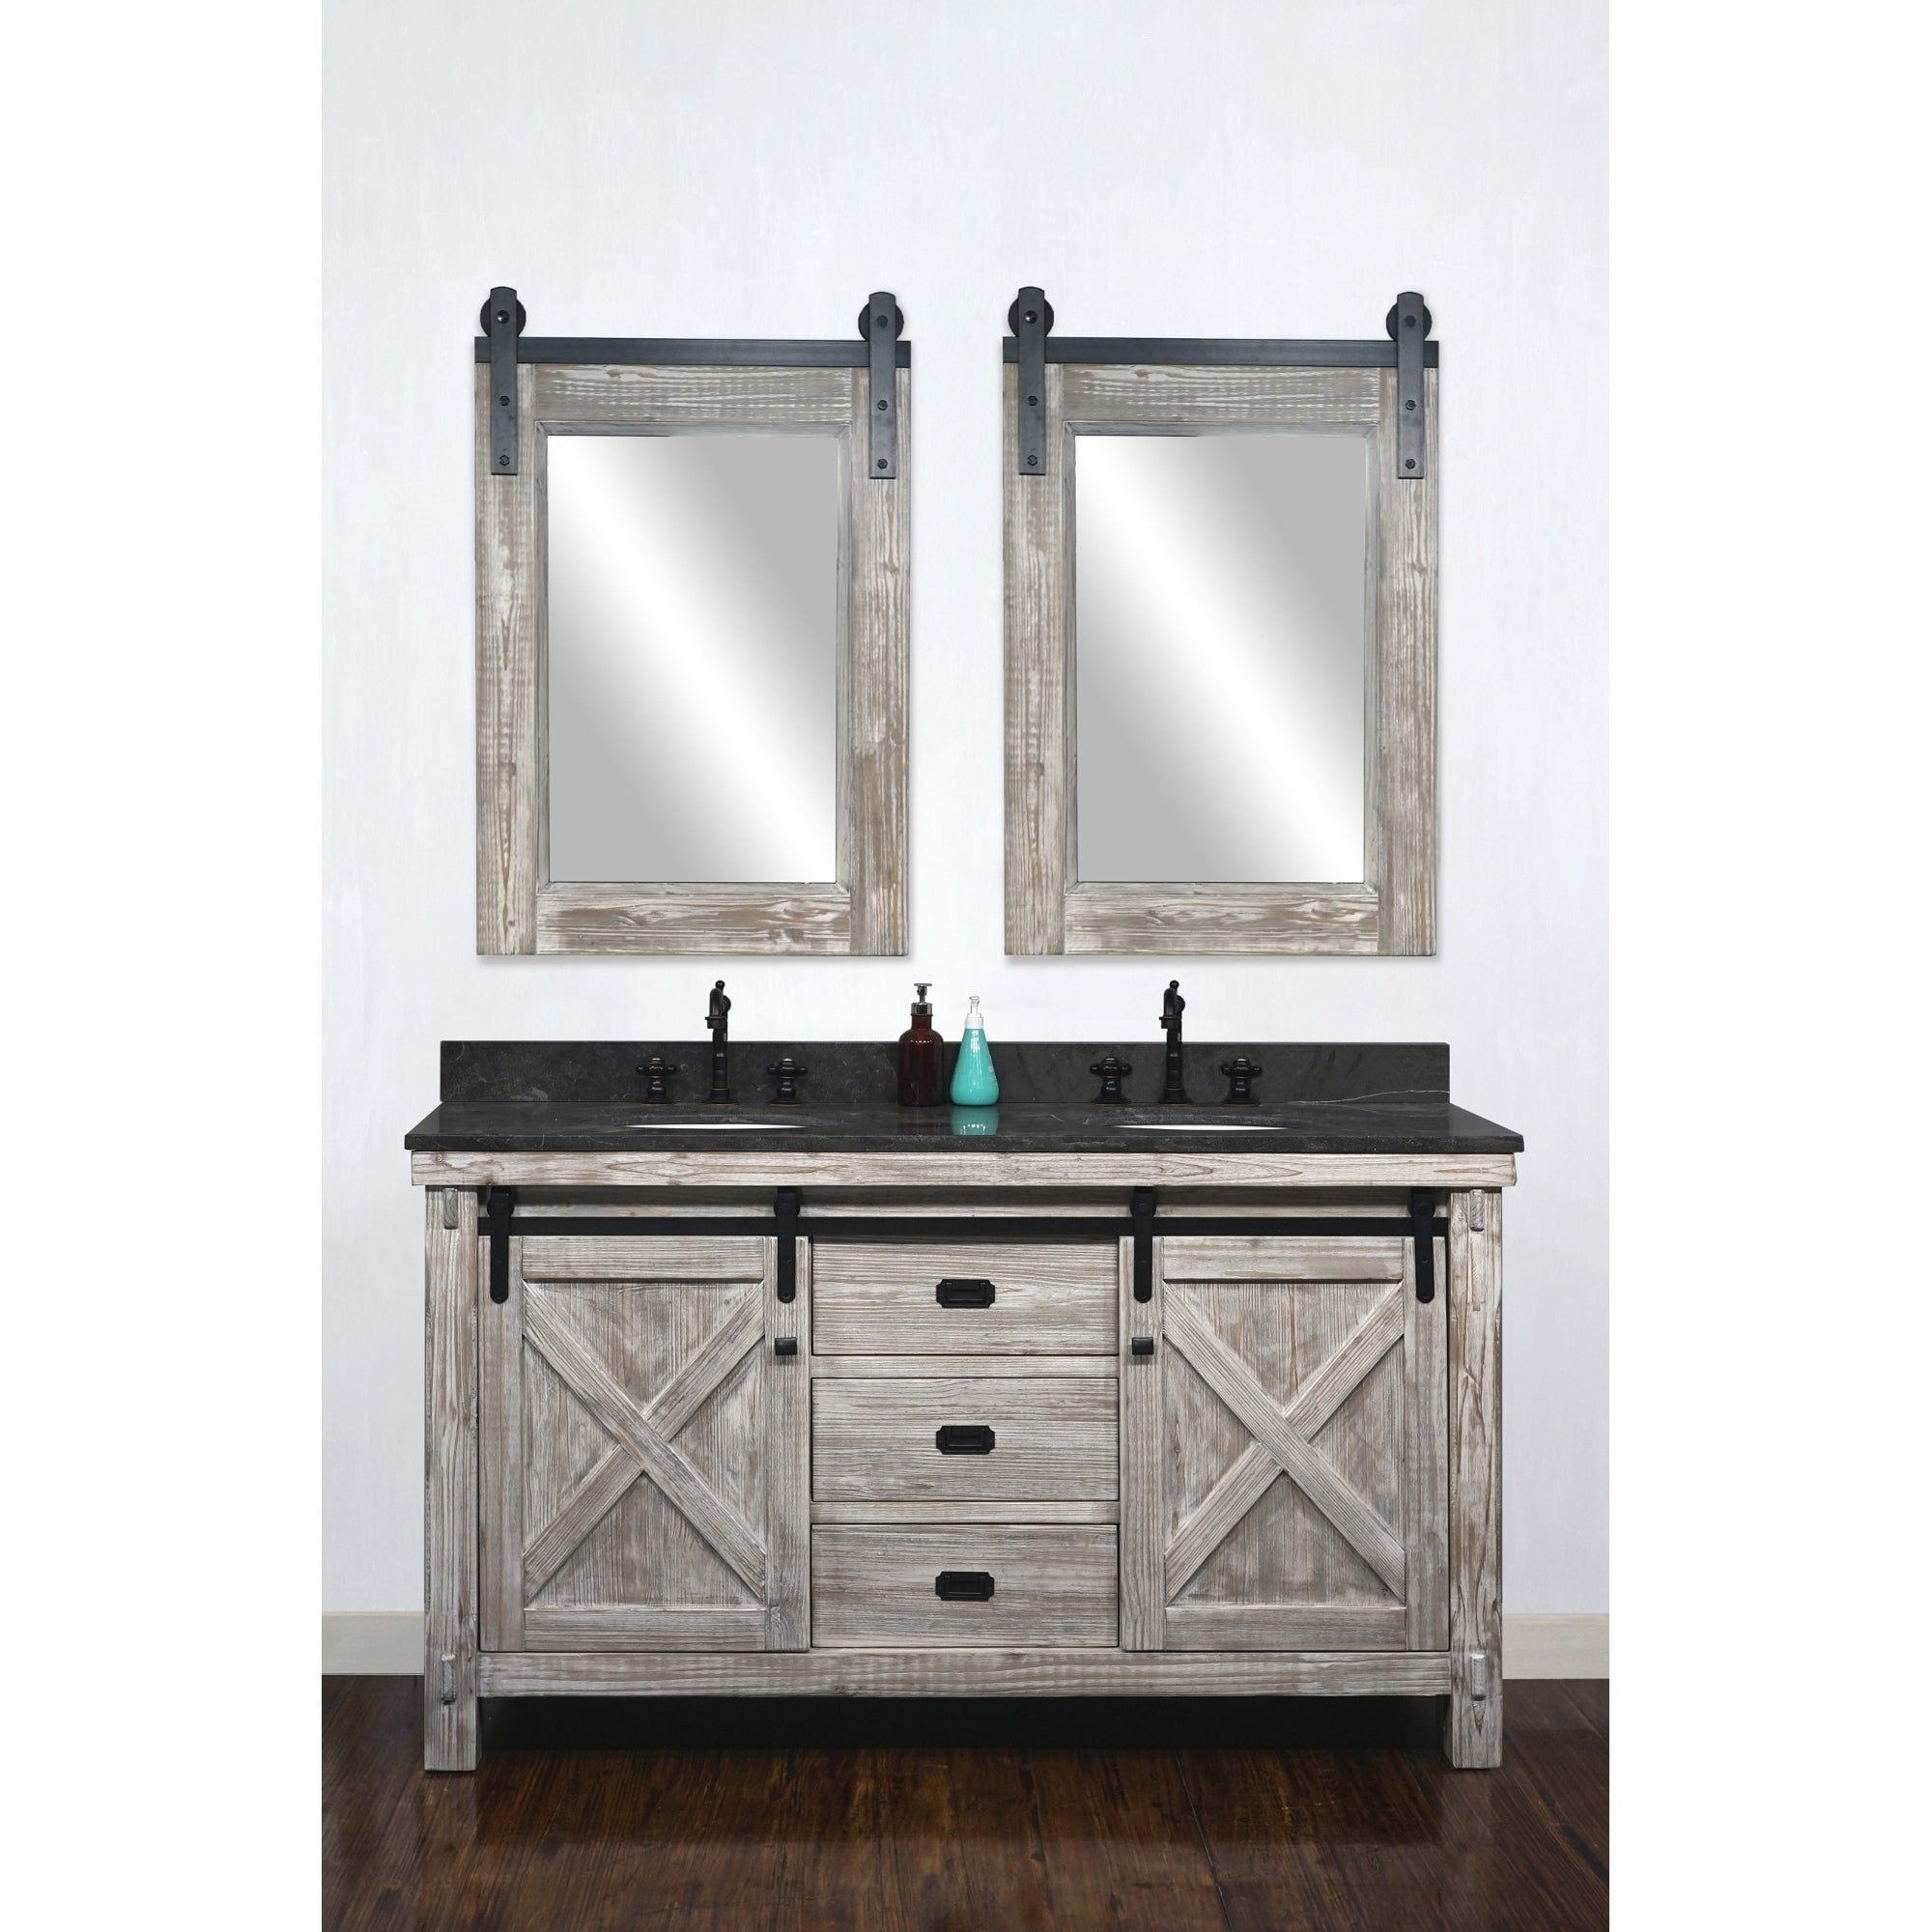 Shop Black Friday Deals On 61 Rustic Solid Fir Barn Door Style White Wash Finish Double Sink Vanites With Marble Or Granite Tops No Faucet Overstock 29882195